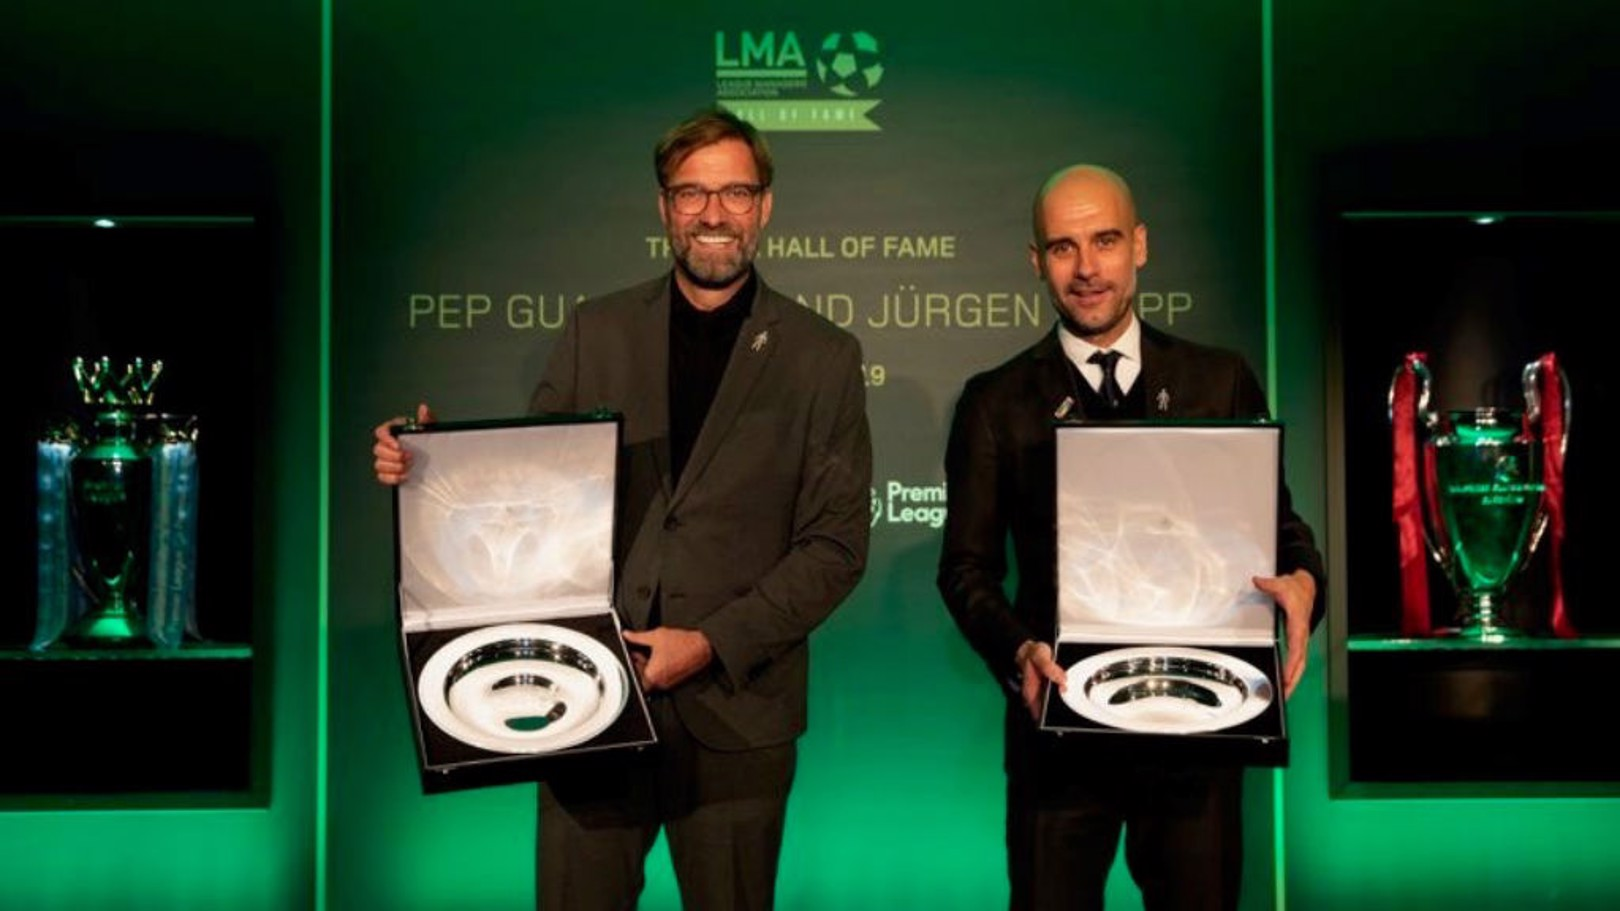 AWARD: Pep has been inducted into the LMA Hall of Fame